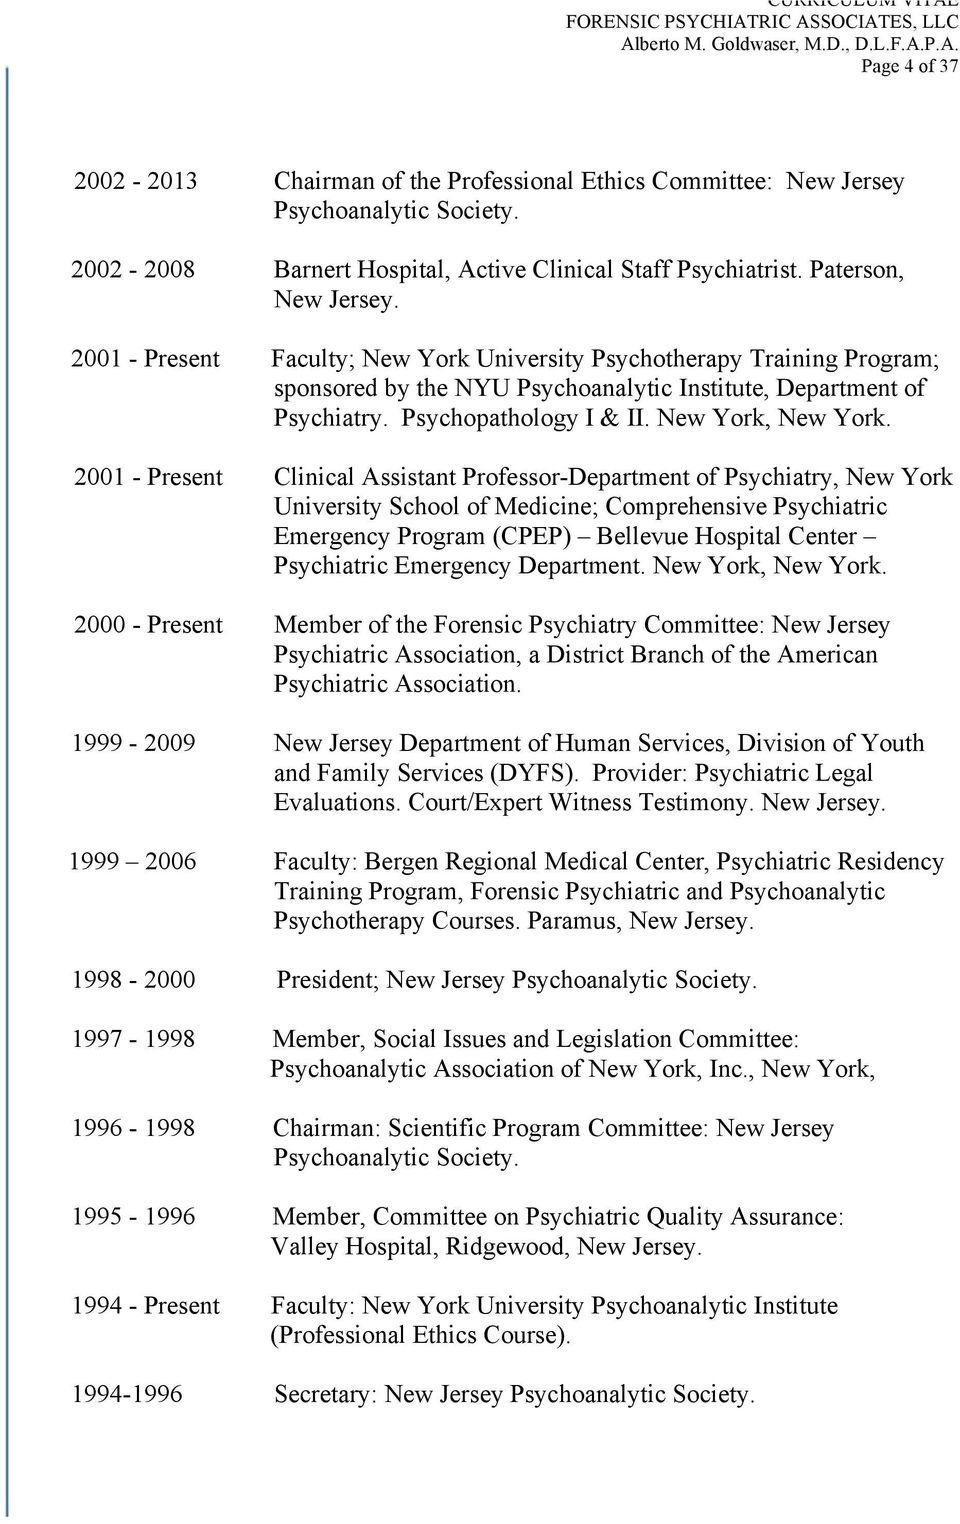 2001 - Present Clinical Assistant Professor-Department of Psychiatry, New York University School of Medicine; Comprehensive Psychiatric Emergency Program (CPEP) Bellevue Hospital Center Psychiatric